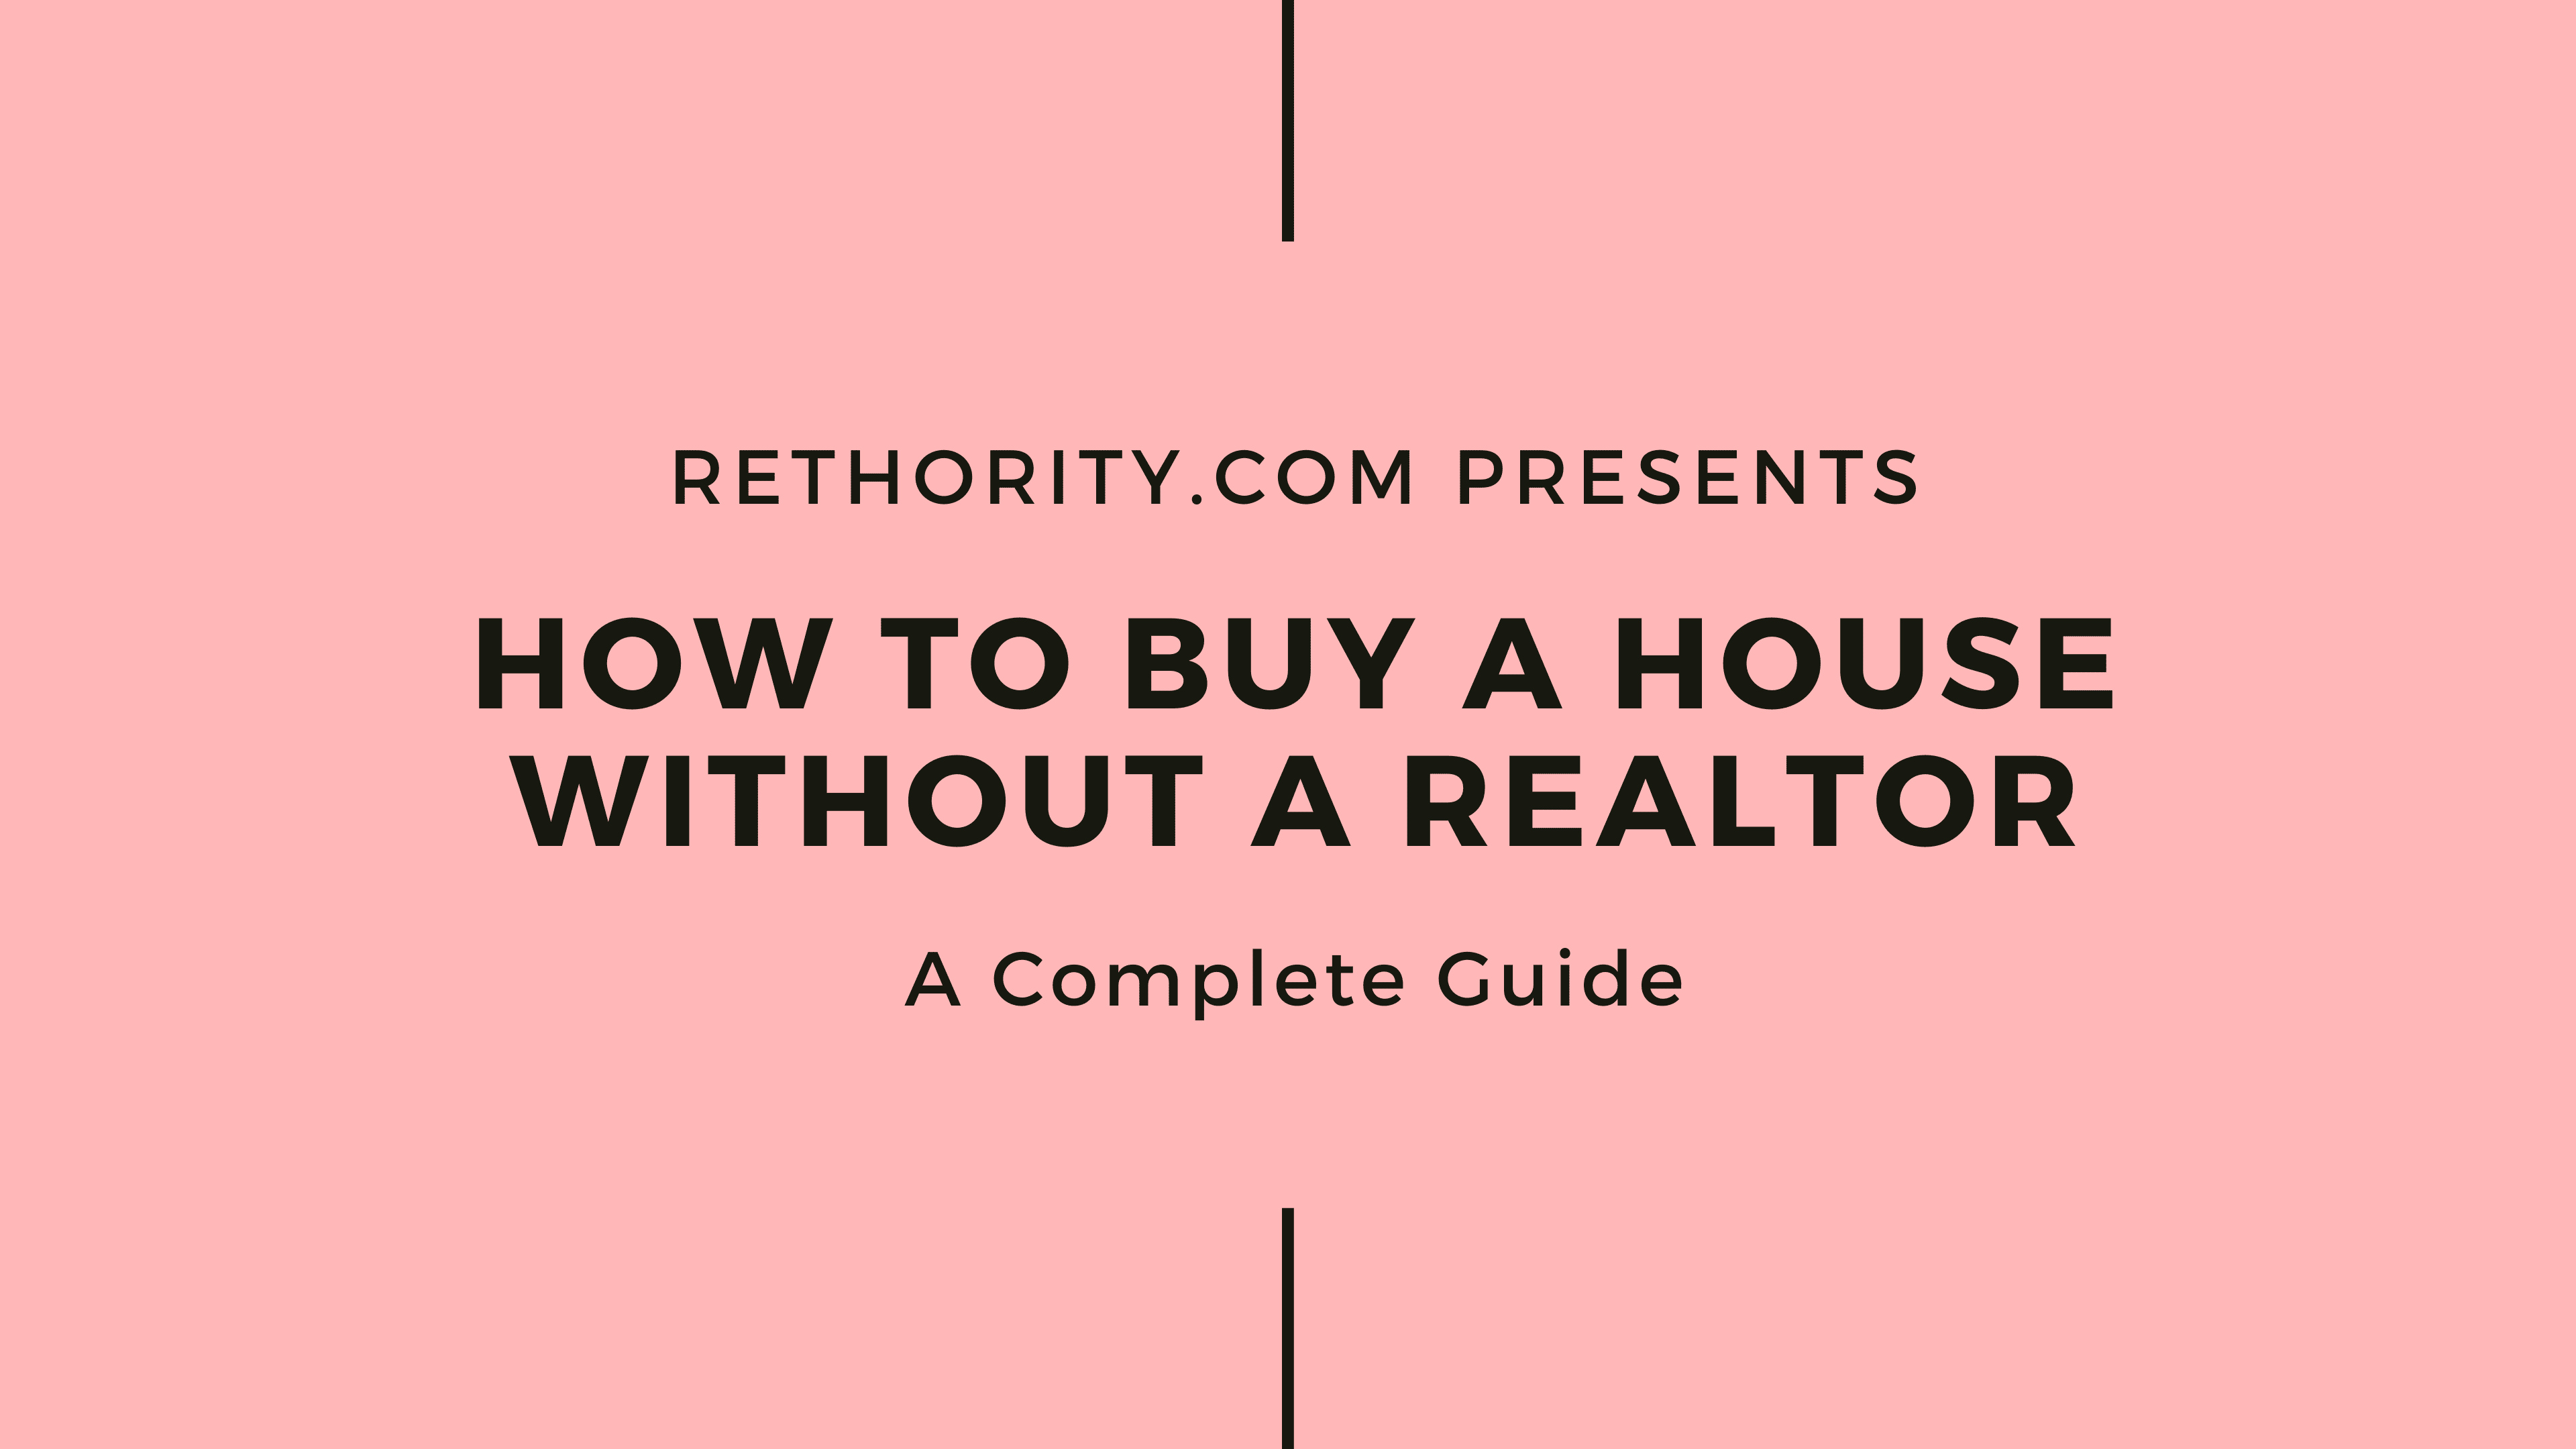 How to buy a house without a realtor graphic against salmon background